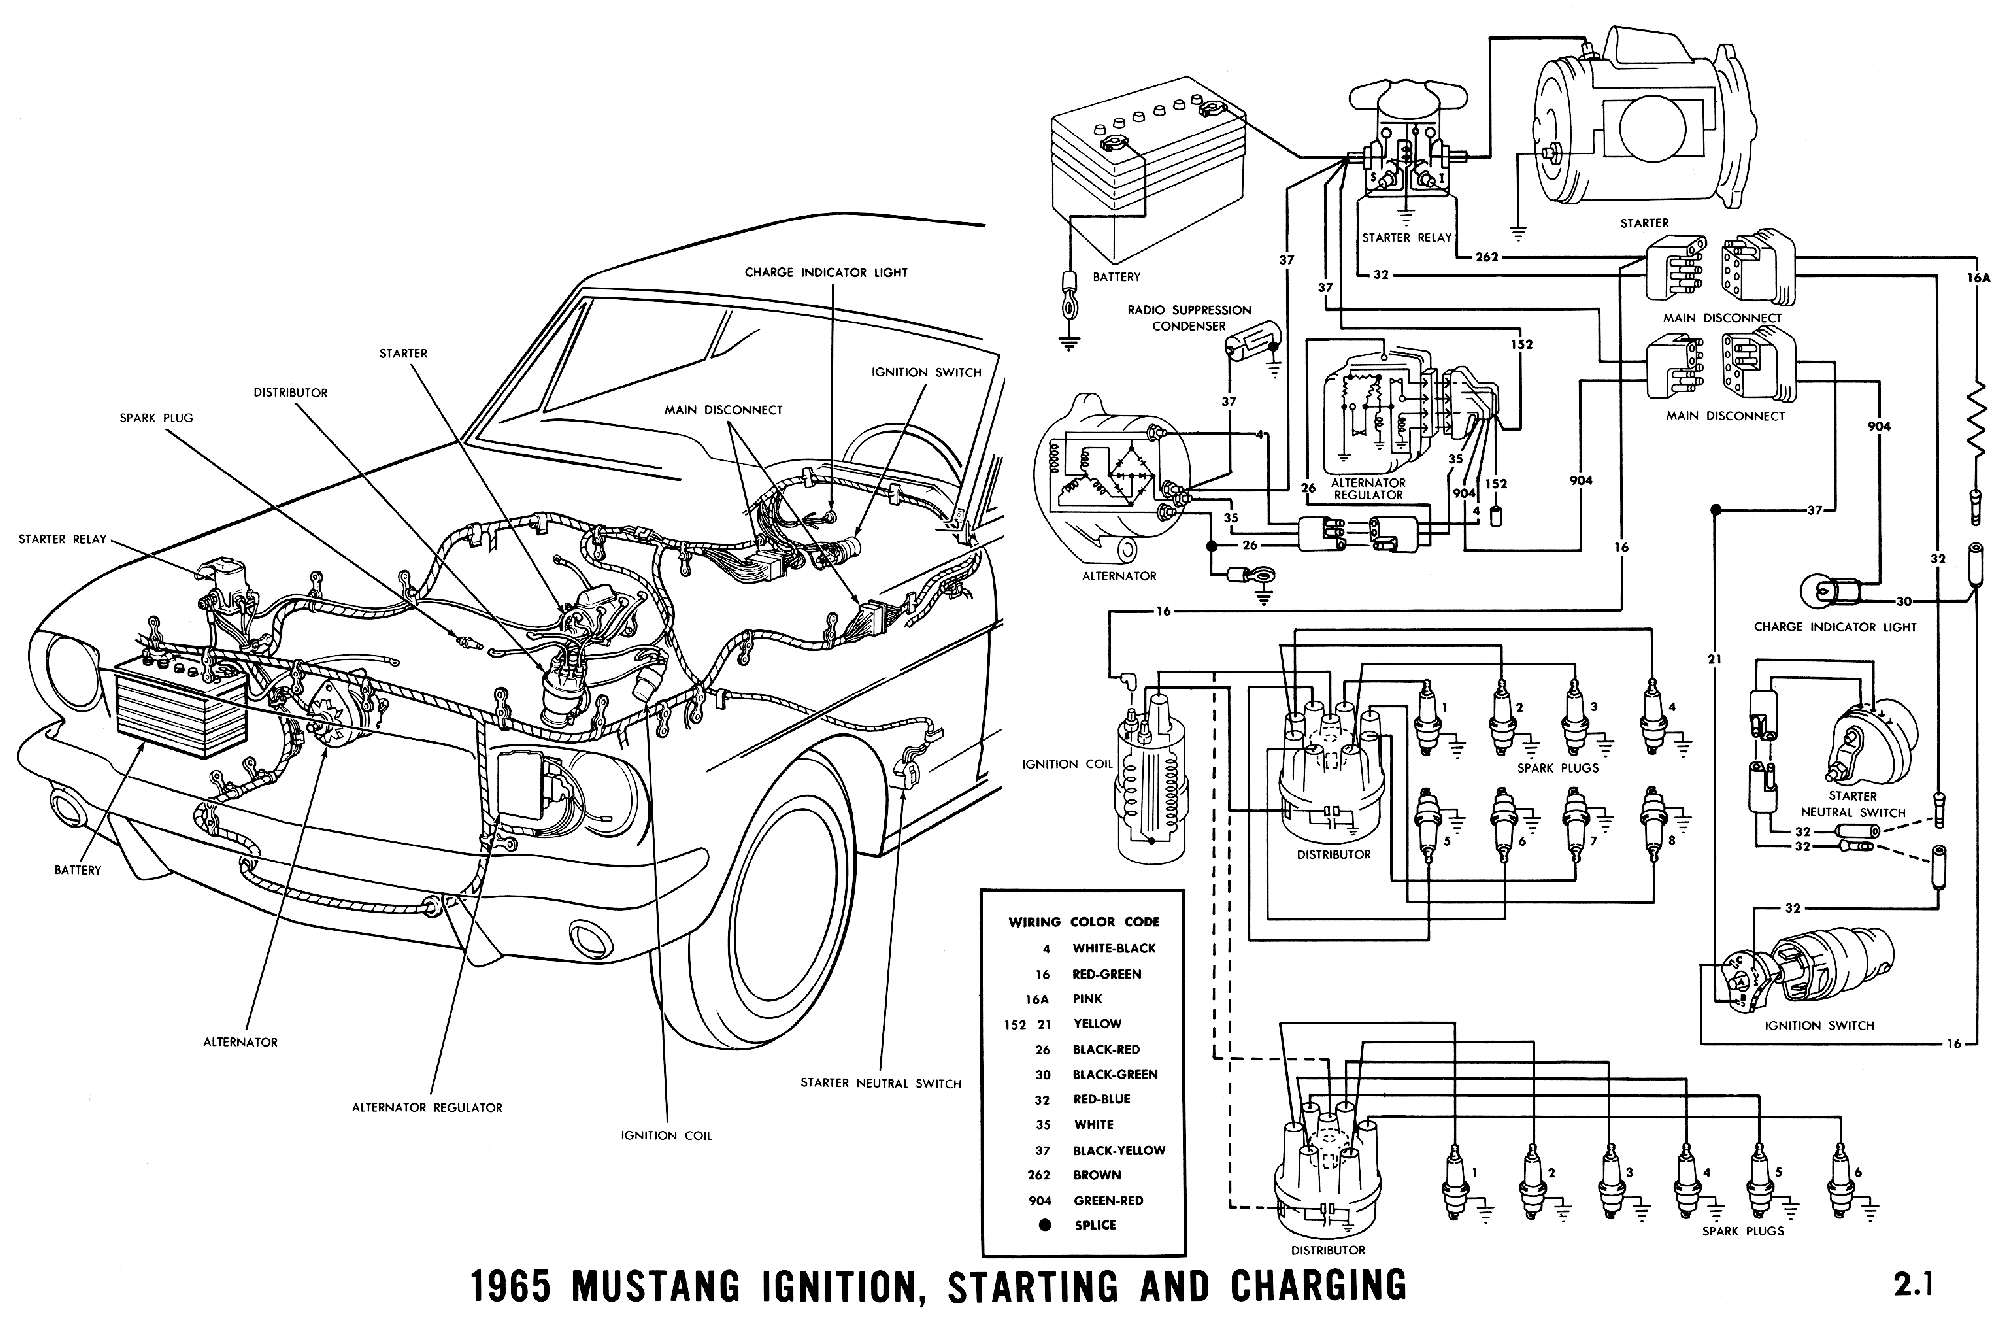 1965 Mustang Wiring Diagrams Average Joe Restoration Painless Indicator Light Diagram Charging Pictorial And Schematic